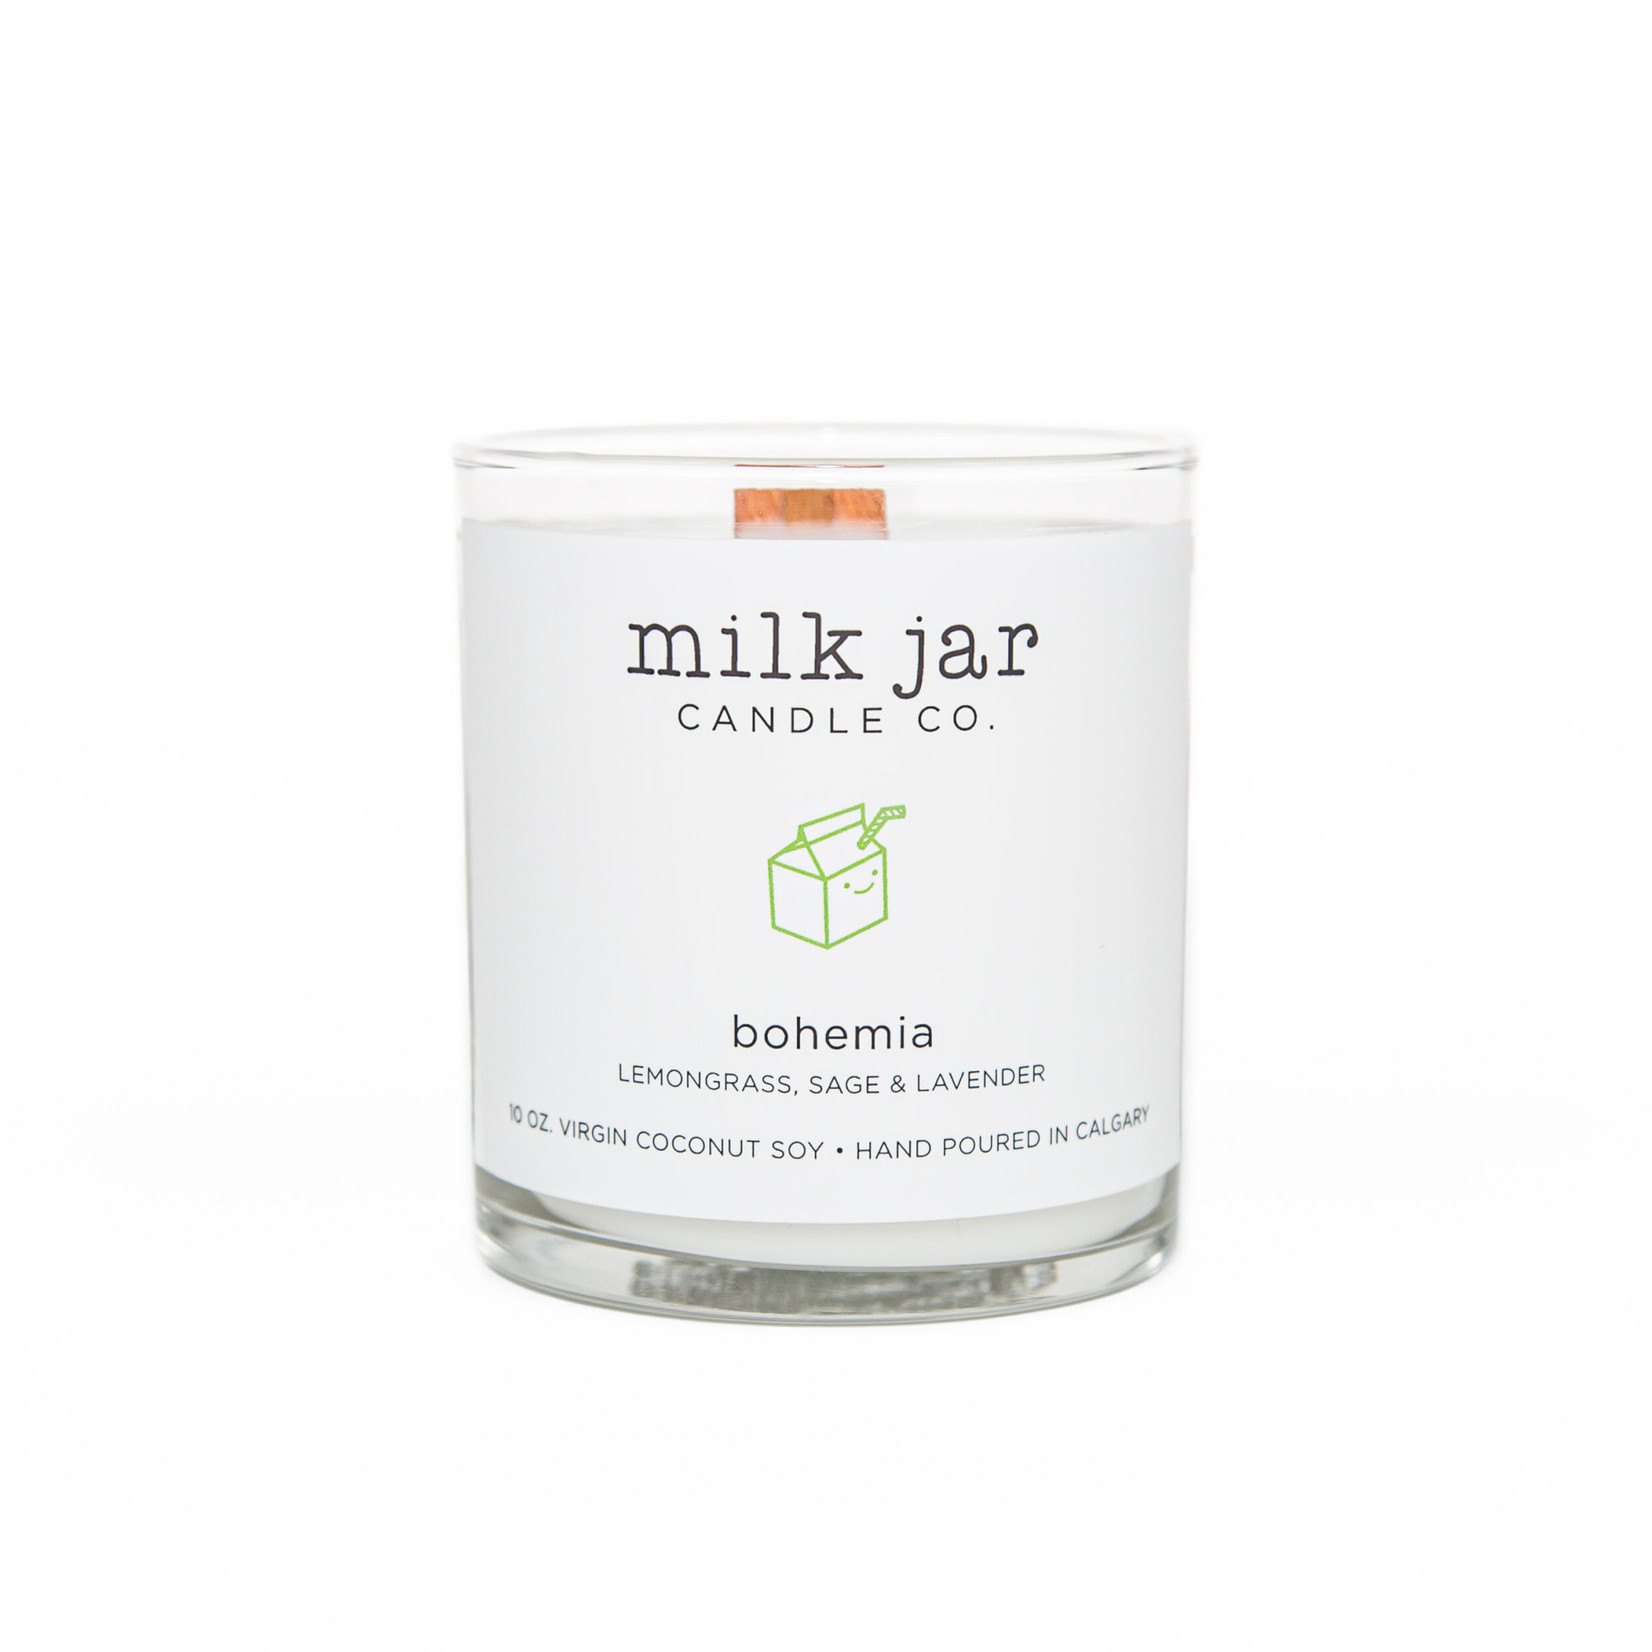 MILK JAR CANDLE CO. BOHEMIA CANDLE